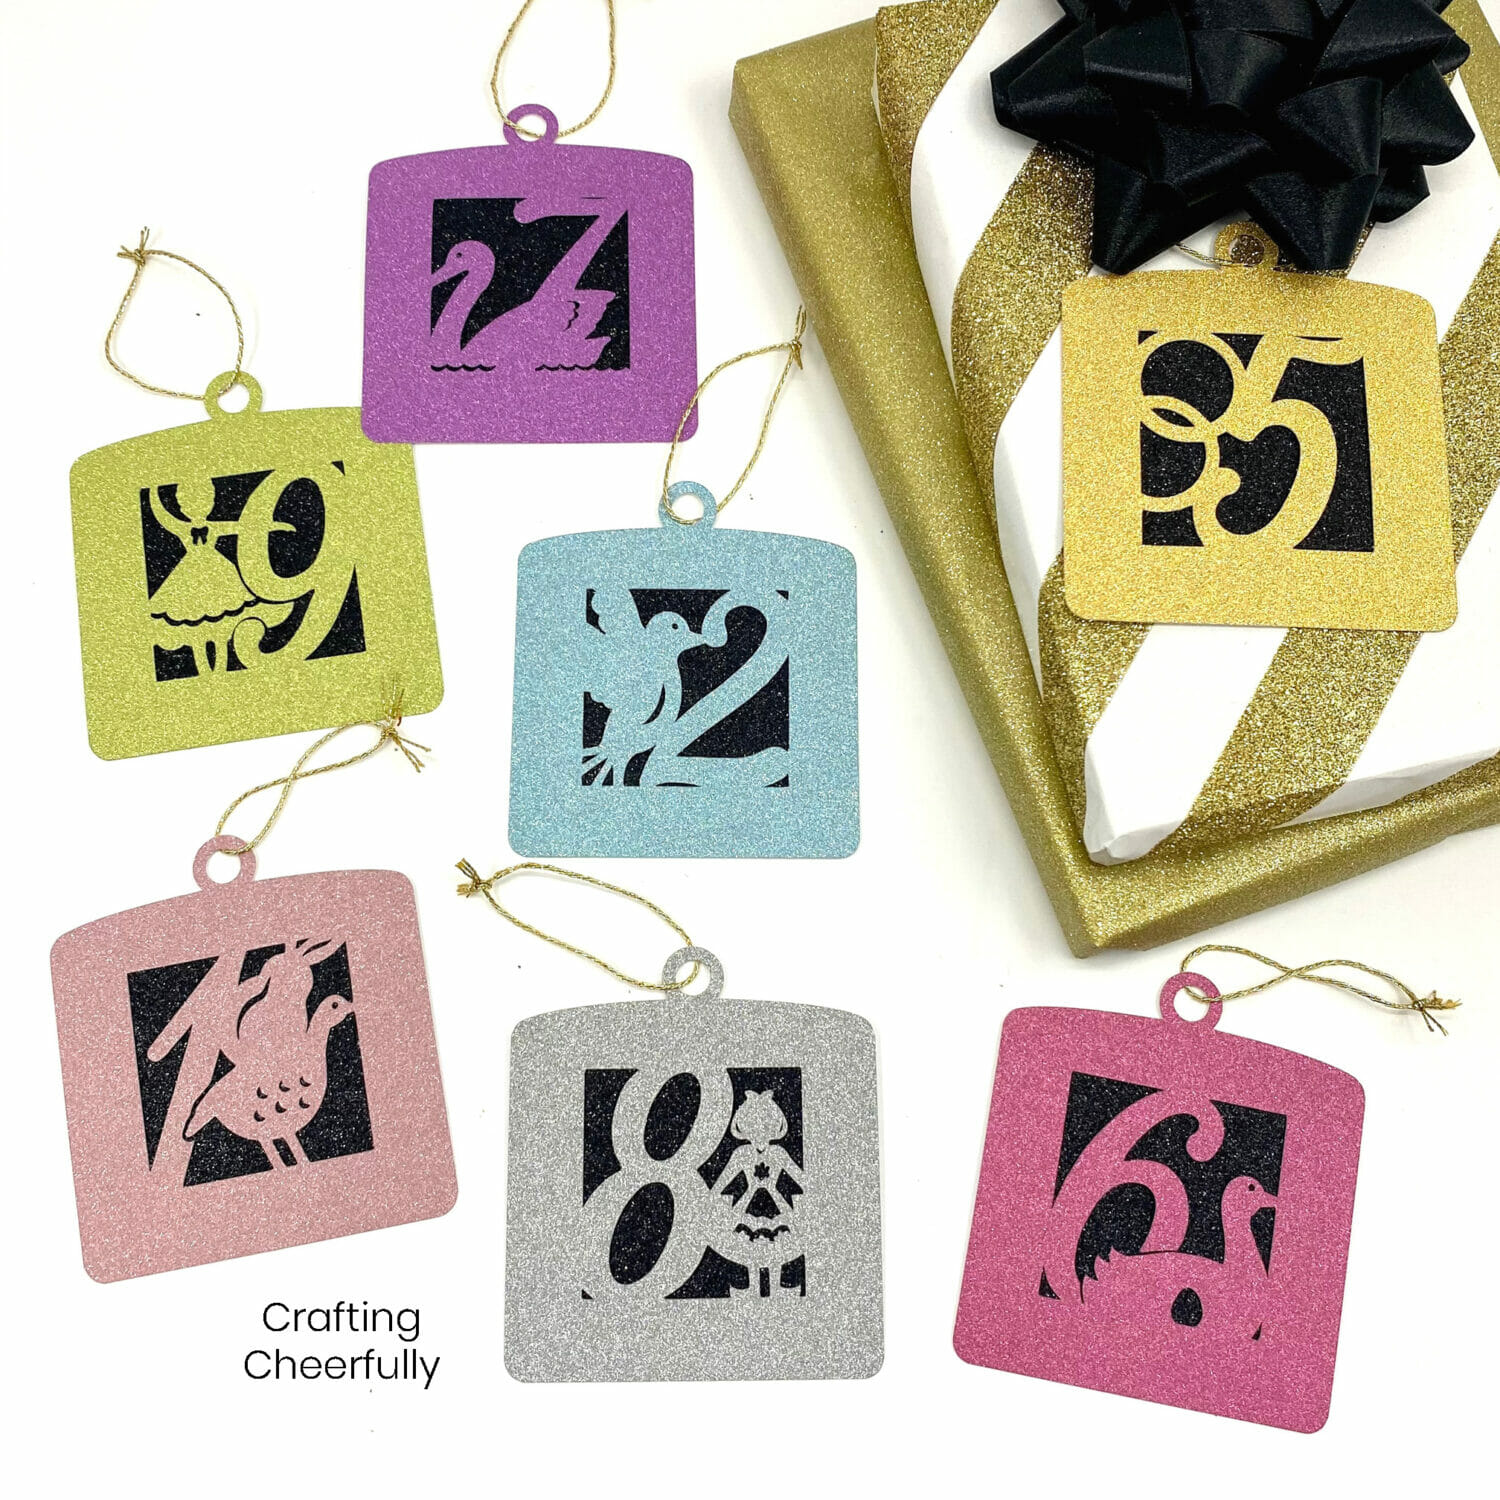 Ornament gift tags designed with the 12 days of Christmas